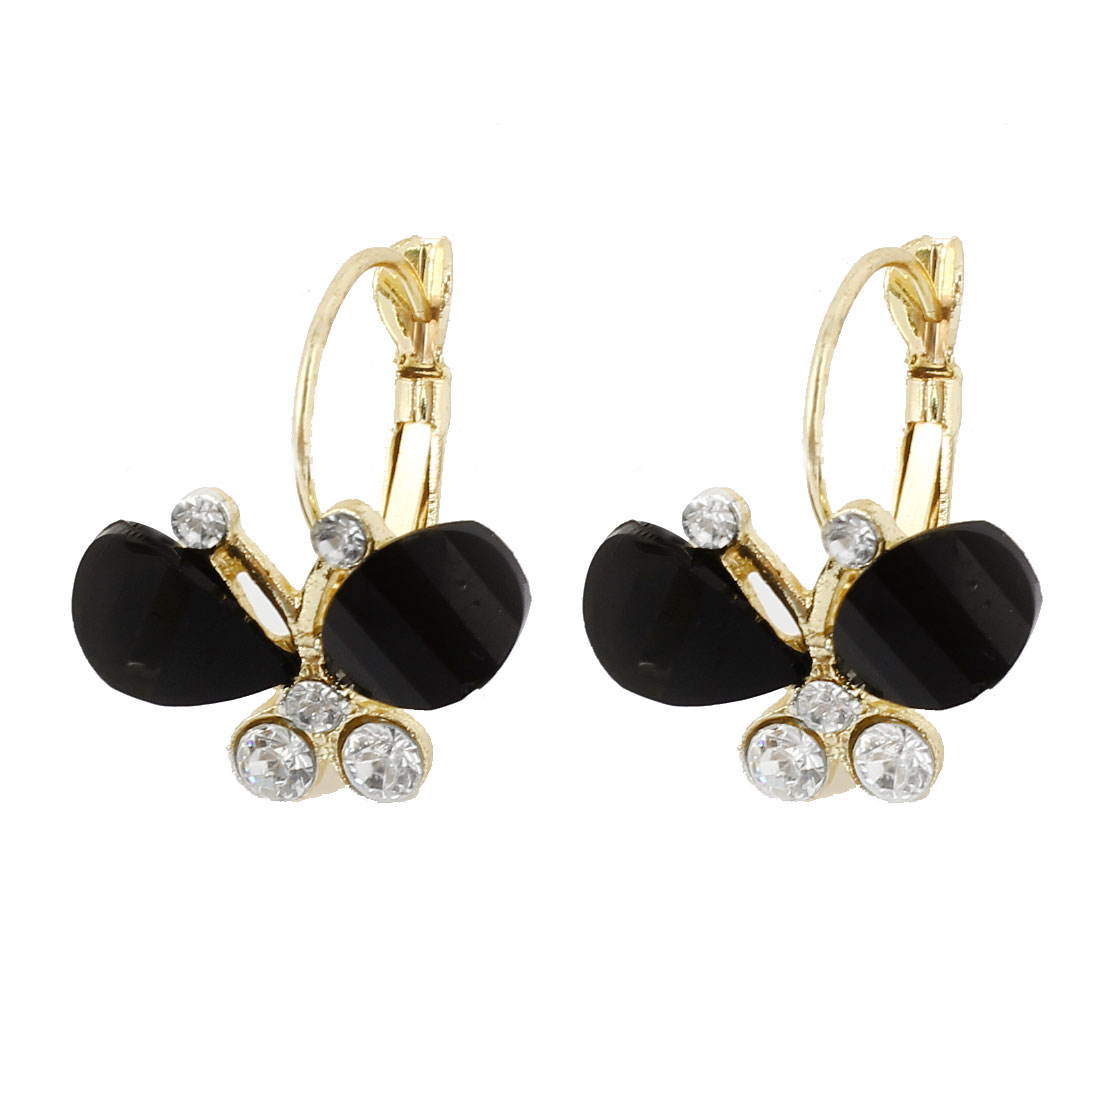 Black Butterfly Design Rhinestone Detailing French Clip Earrings Pair for Lady